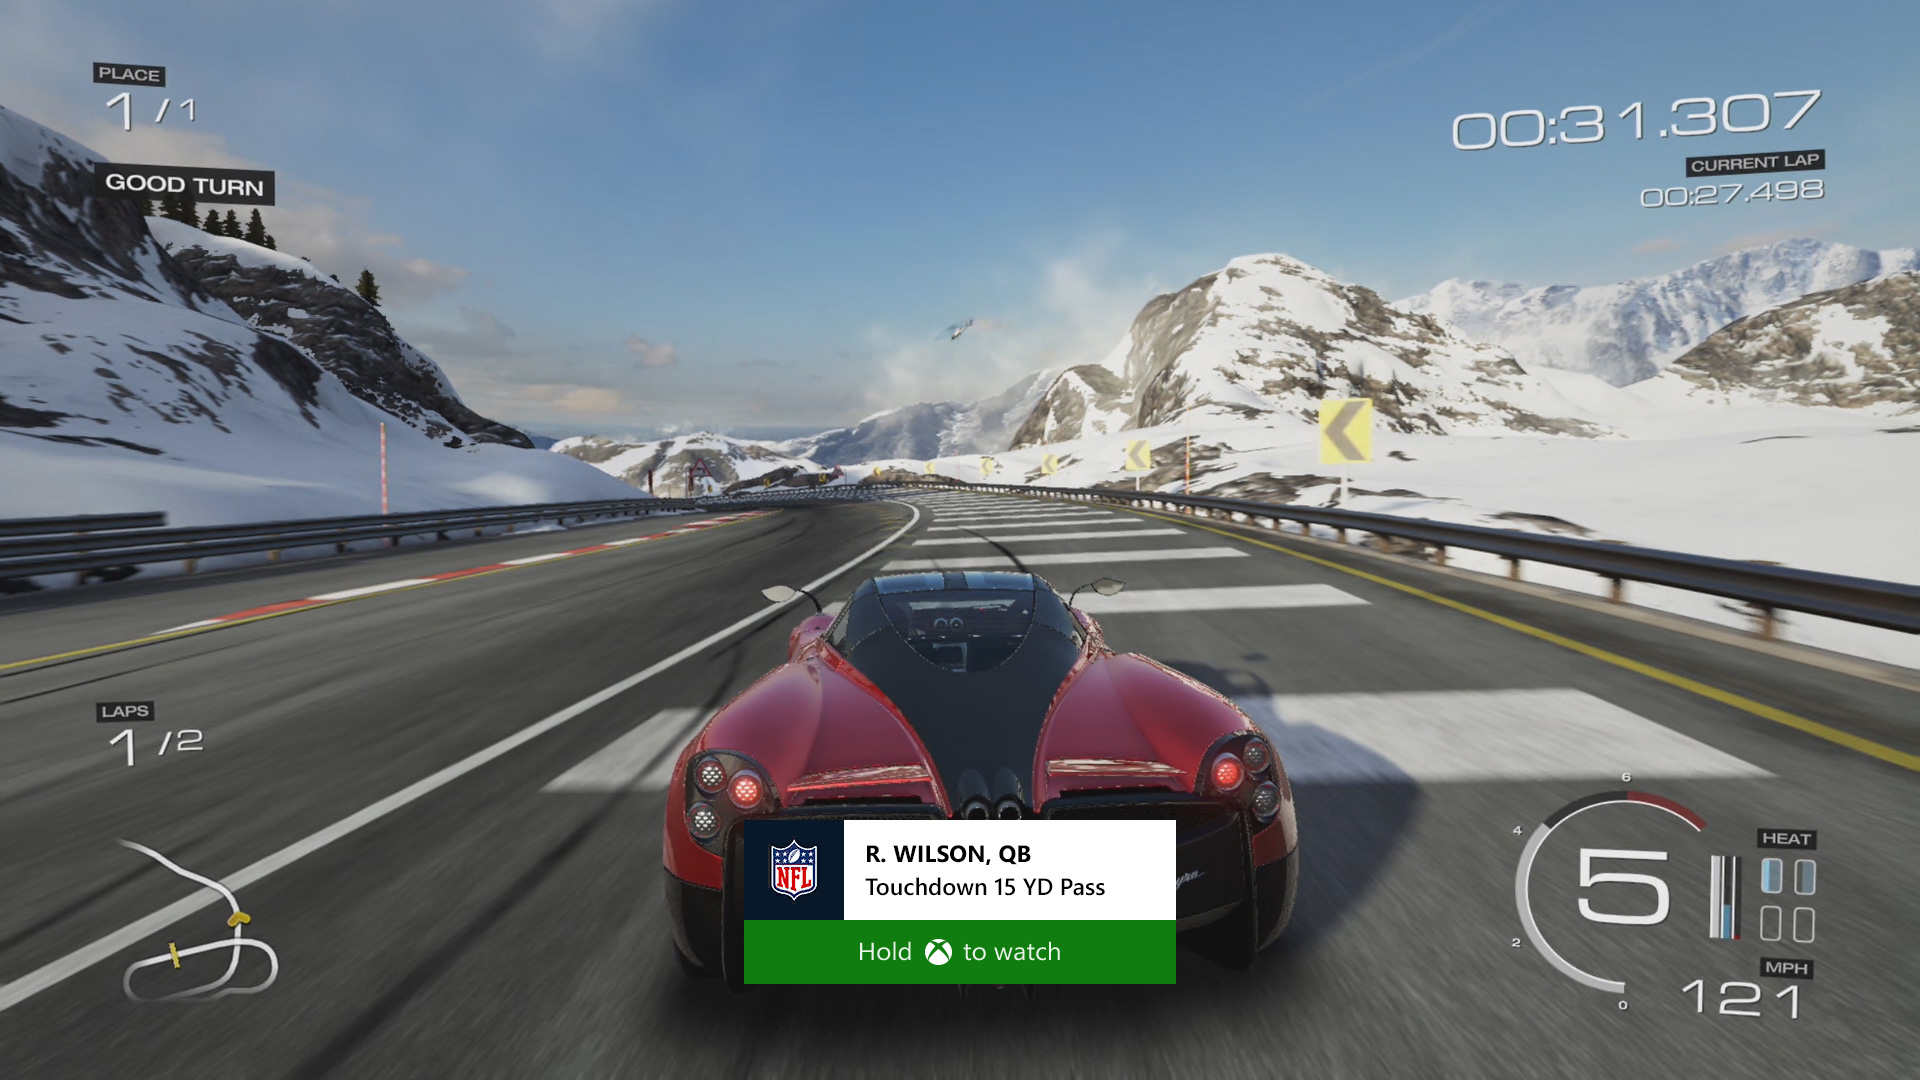 NFL on Xbox One app gets Sunday Ticket and new fantasy football partners for 2014